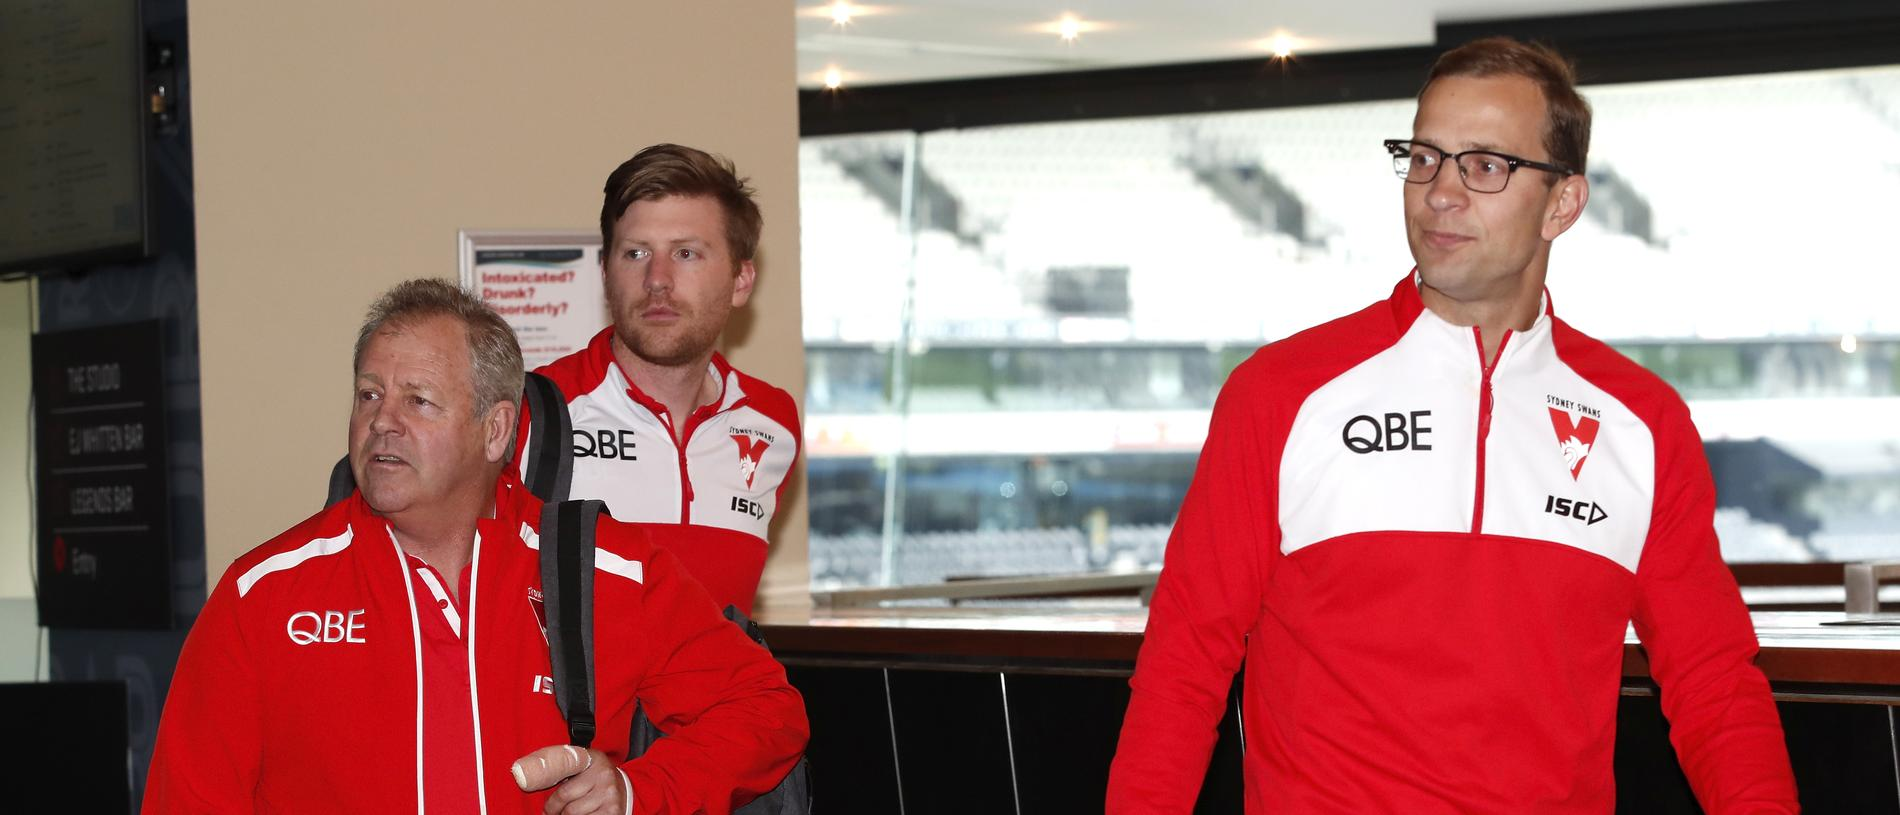 MELBOURNE, AUSTRALIA - OCTOBER 16: Head of Recruitment and List Strategy Kinnear Beatson of the Swans (L) arrives during the Telstra AFL Trade Period at Marvel Stadium on October 16, 2019 in Melbourne, Australia. (Photo by Dylan Burns/AFL Photos via Getty Images)